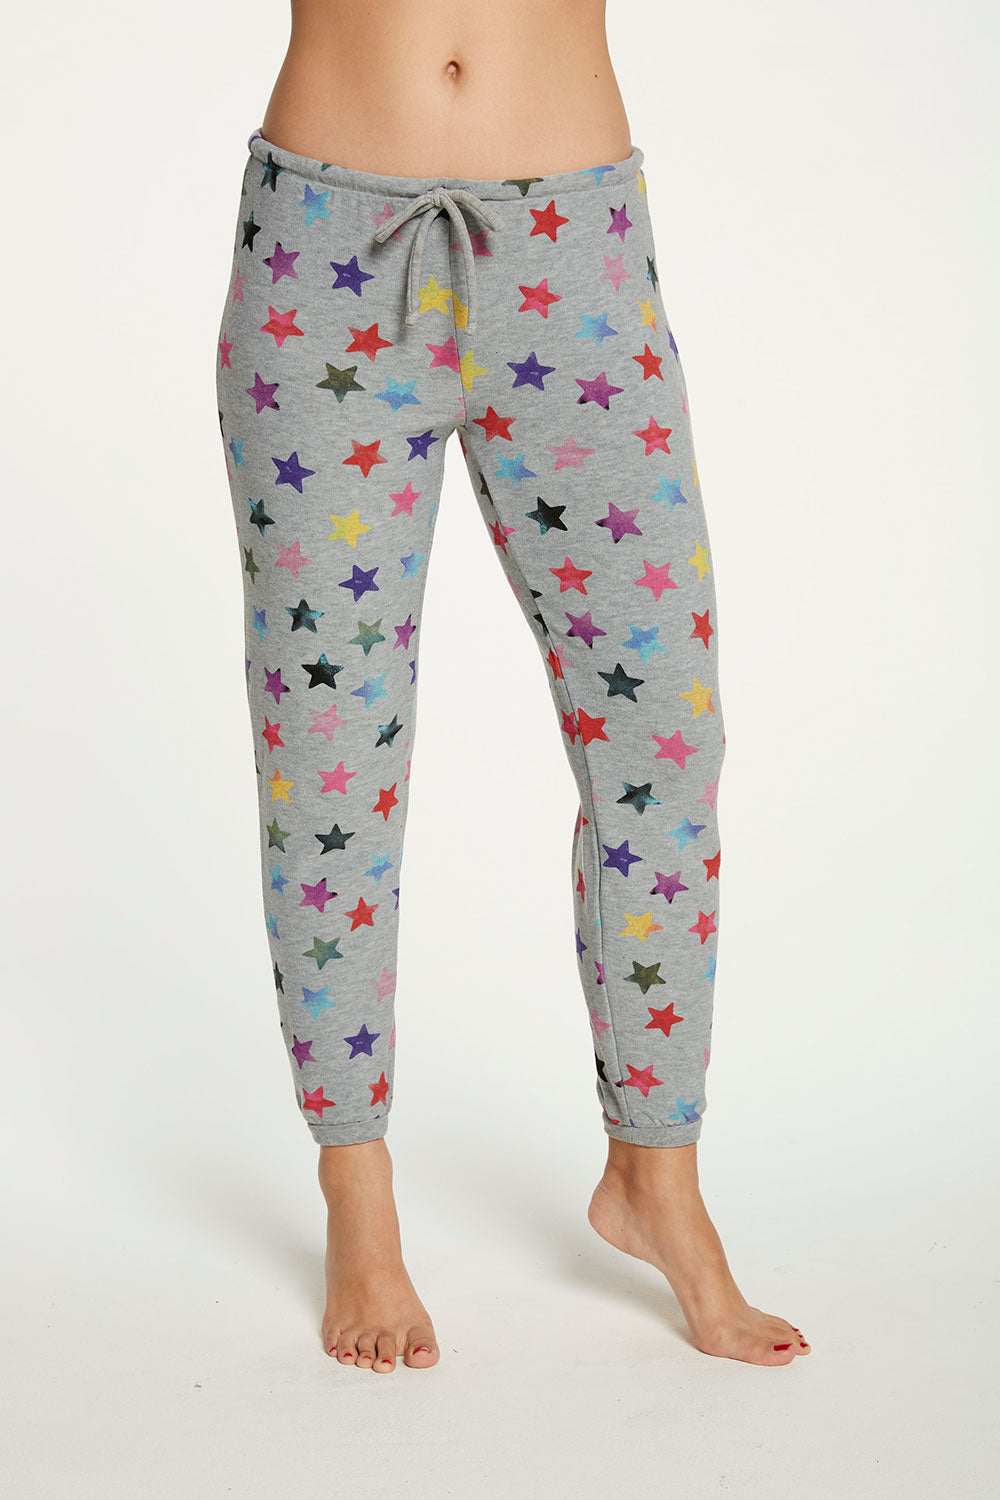 Starry Pants